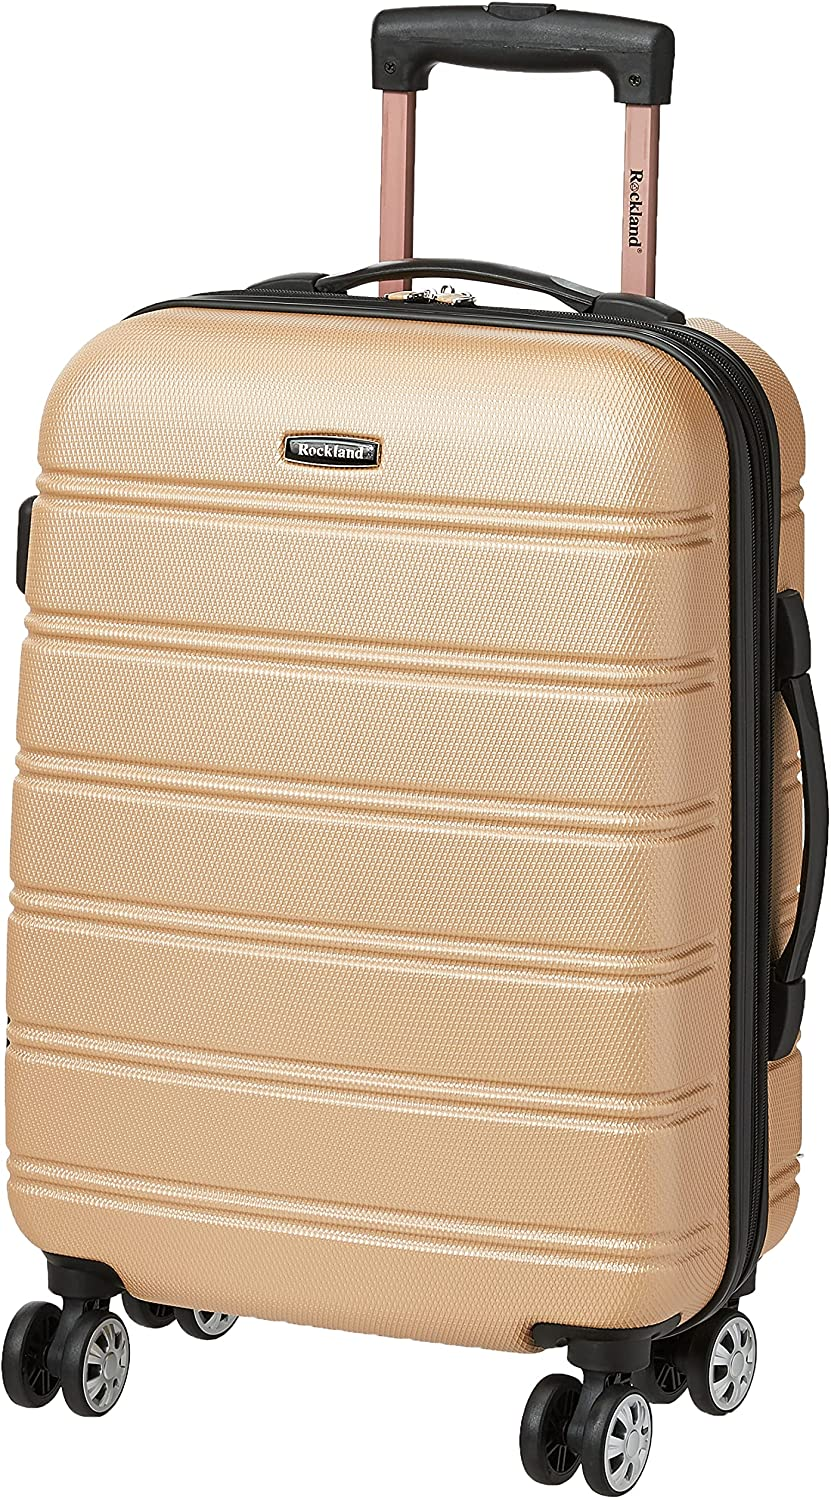 Rockland Melbourne Expandable Carry-On Luggage